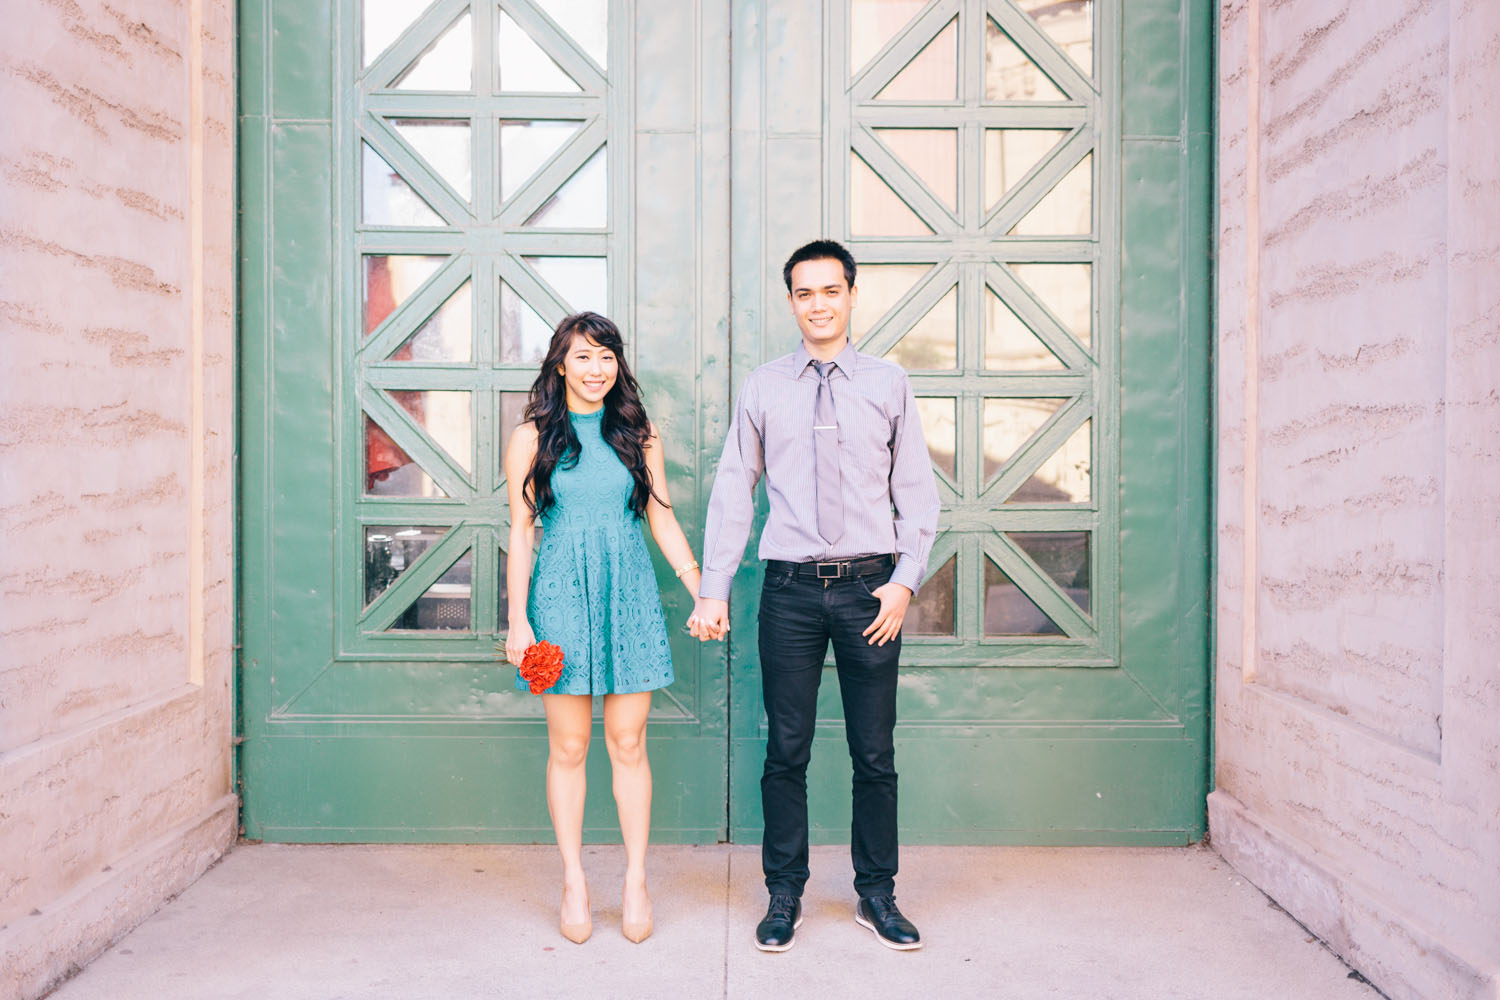 San Francisco Engagement Session Crissy Fields Palace of Fine Arts Engagement Photos by Engagement and Wedding Photographer JBJ Pictures.jpg